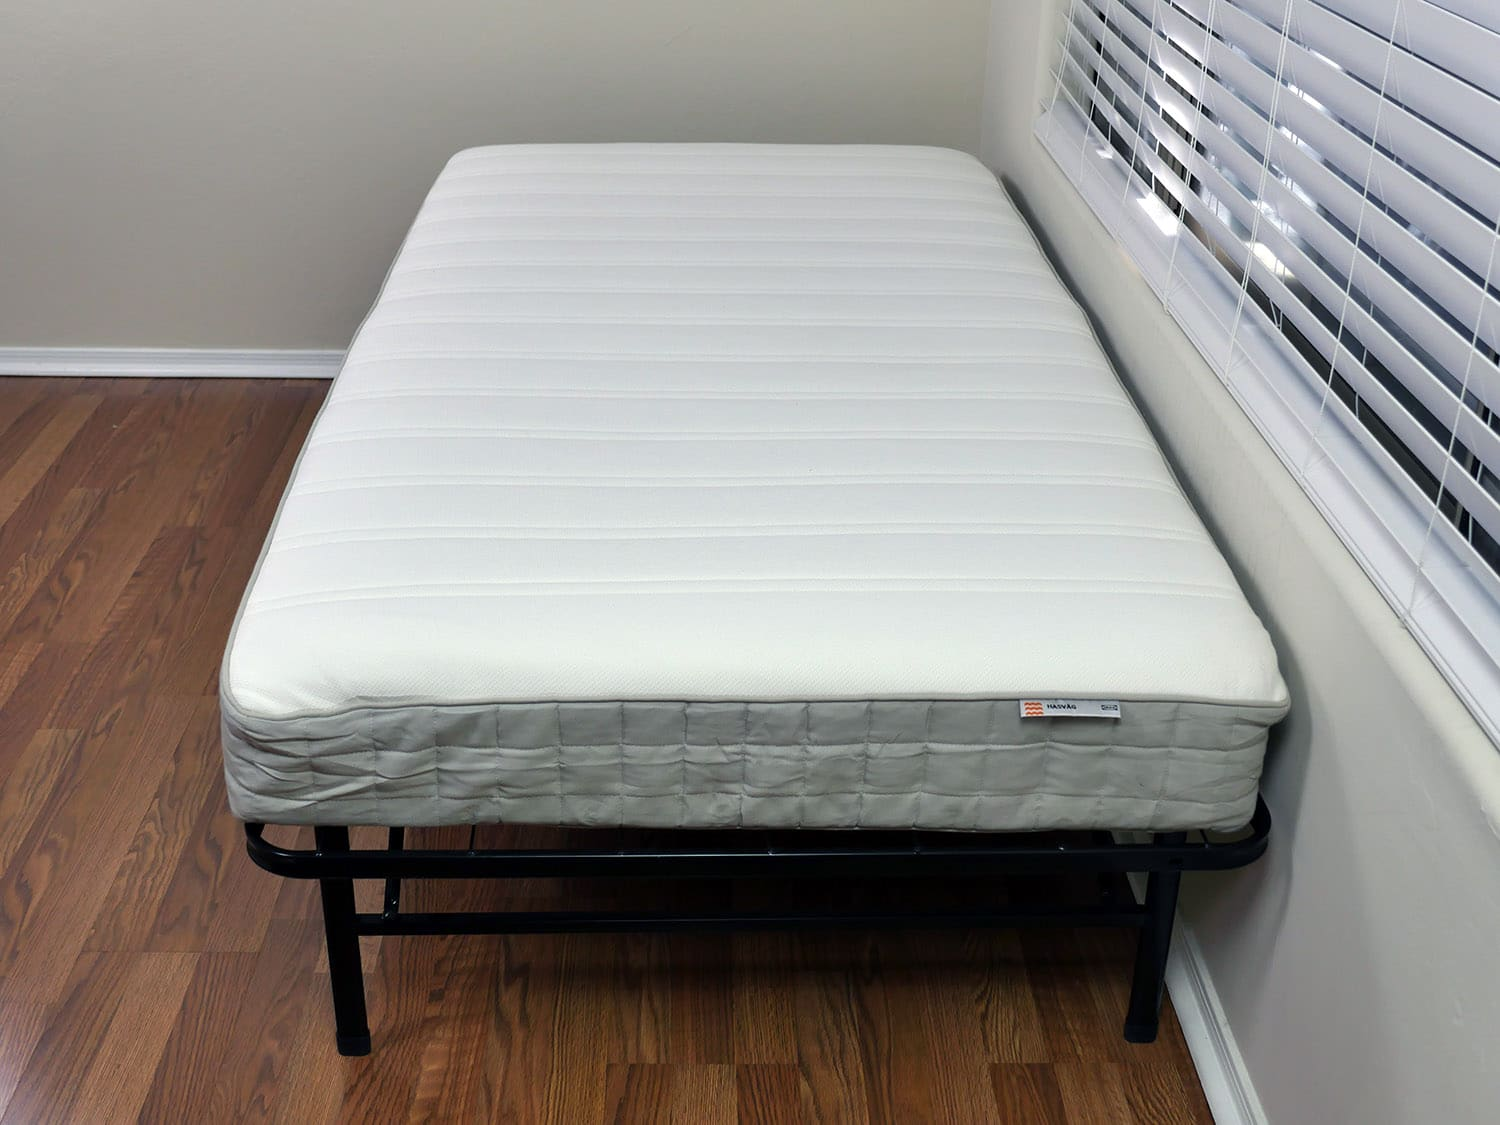 Ikea Matras Review Ikea Mattress Reviews Sleepopolis